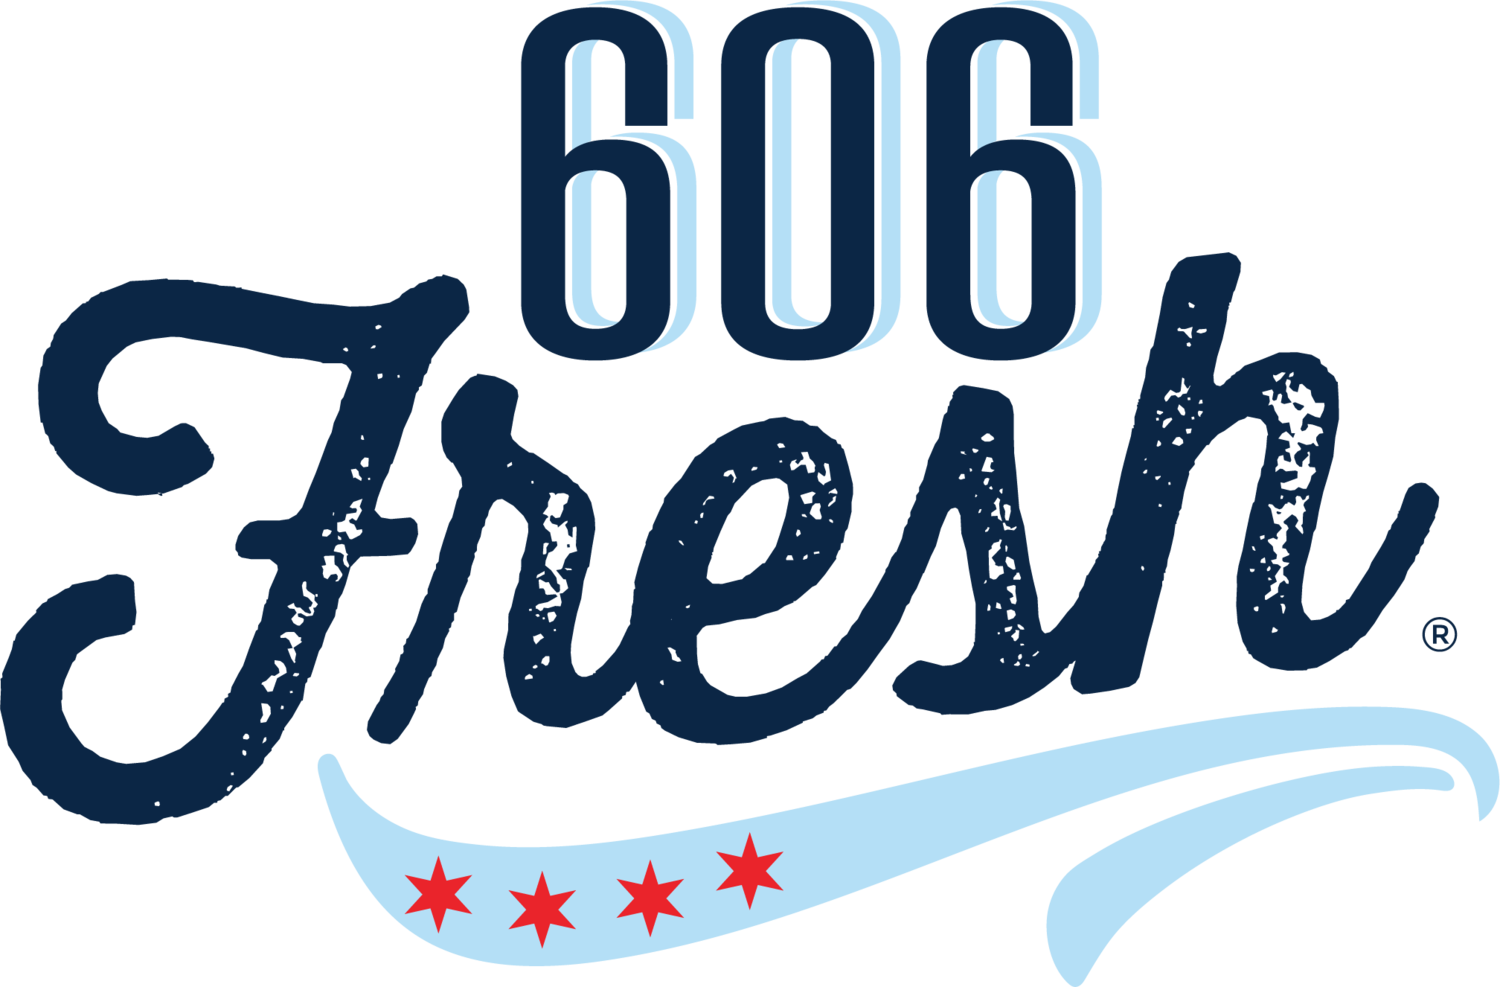 606 Fresh ready-to-eat, grab and go food and beverages